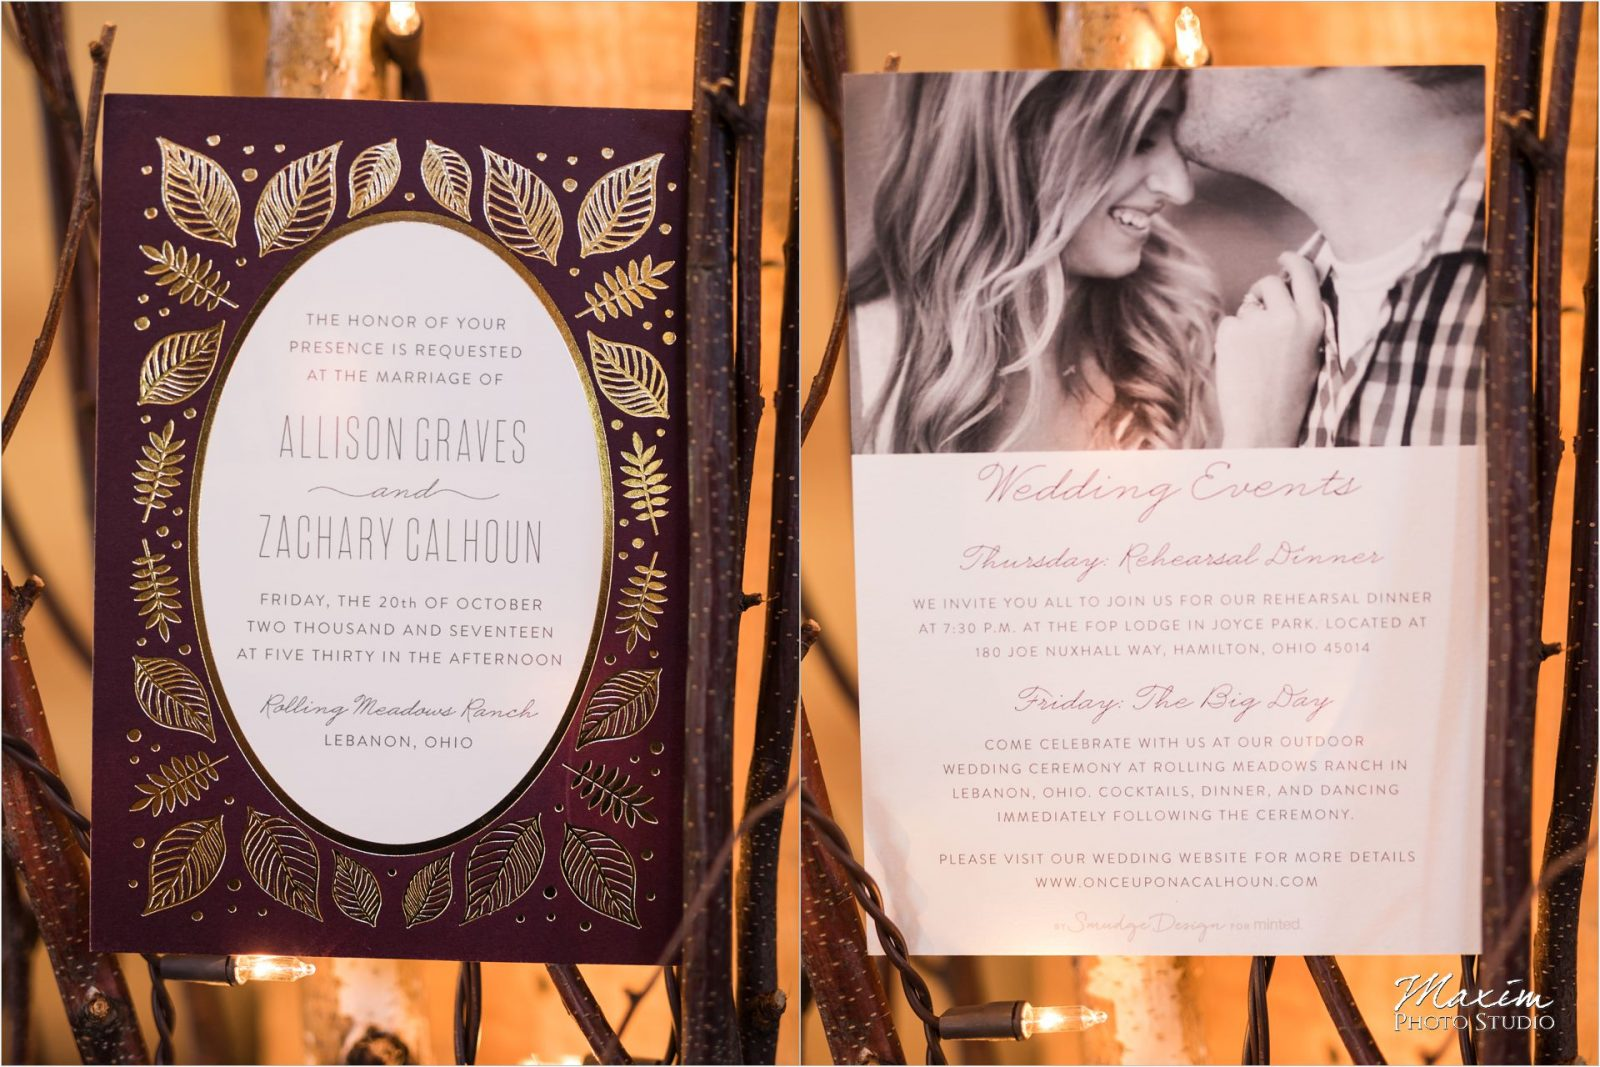 Rolling Meadows Ranch Lebanon Ohio Wedding Invitations Minted